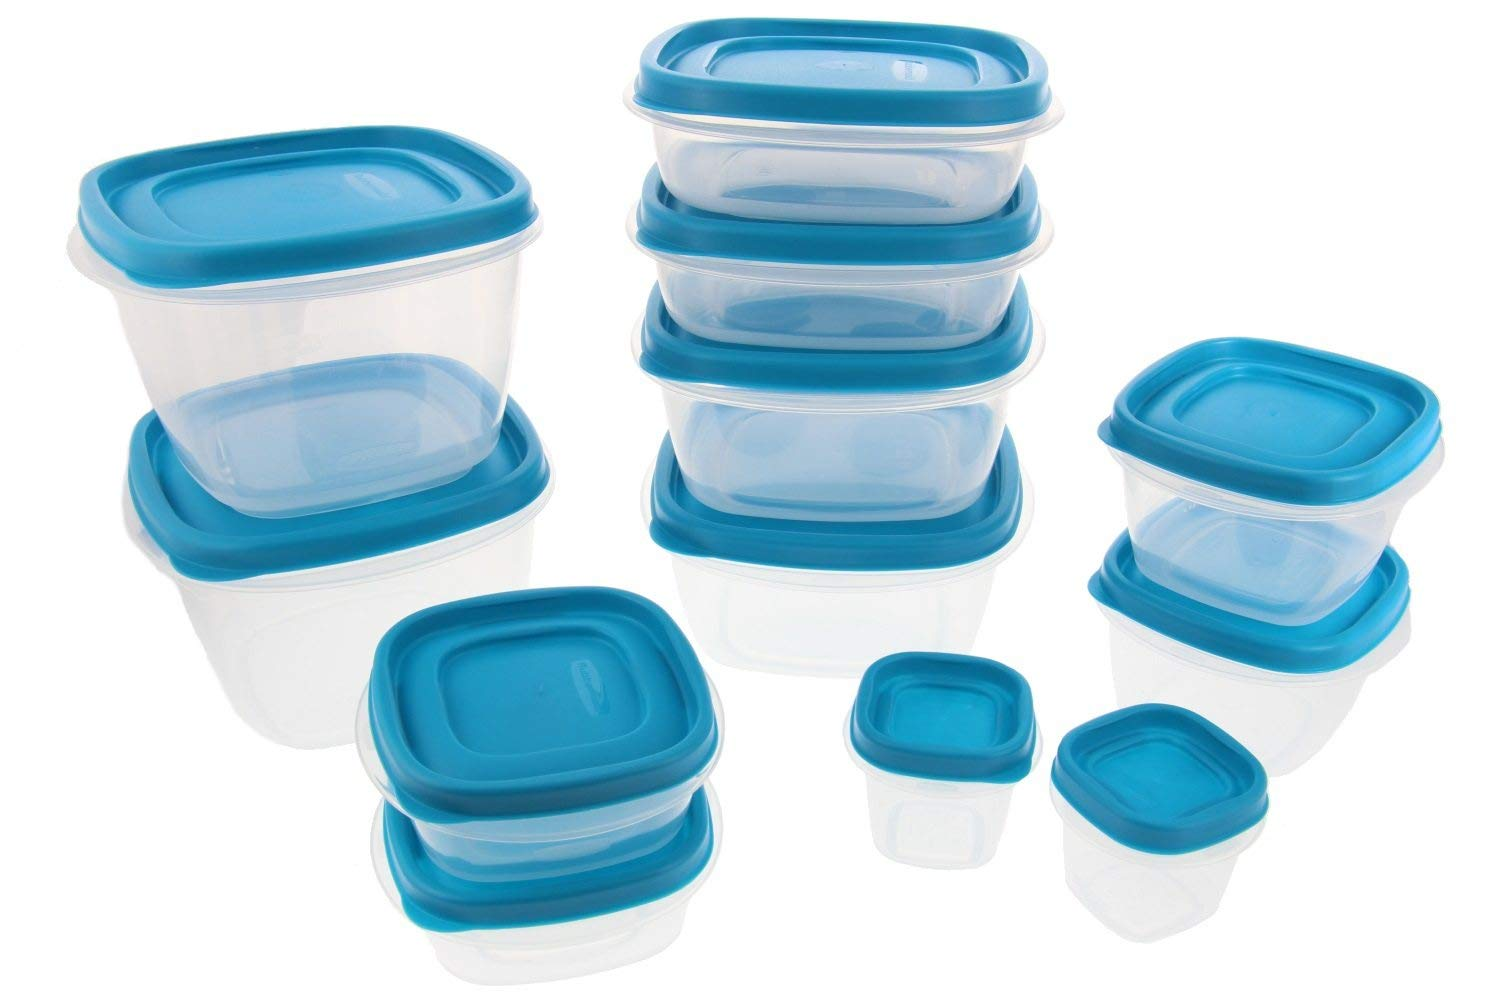 Rubbermaid Food Storage Containers w/Easy Find Lids System - Stain  Resistant BPA-Free Tritan Plastic - Great for Storing Leftovers & Staples -  24 ...